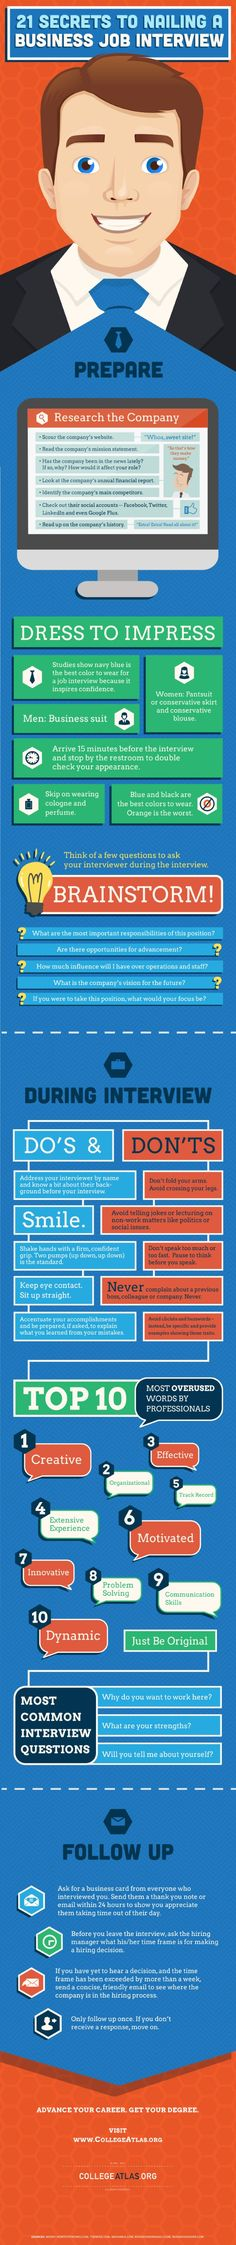 infographic Nailing a Job Interview by Brian Junyor via slideshare. Image Description Nailing a Job Interview by Brian Junyor via slideshare Interview Skills, Job Interview Tips, Job Interview Questions, Interview Preparation, Job Interviews, Interview Format, Job Hunting Tips, Leadership, Job Help